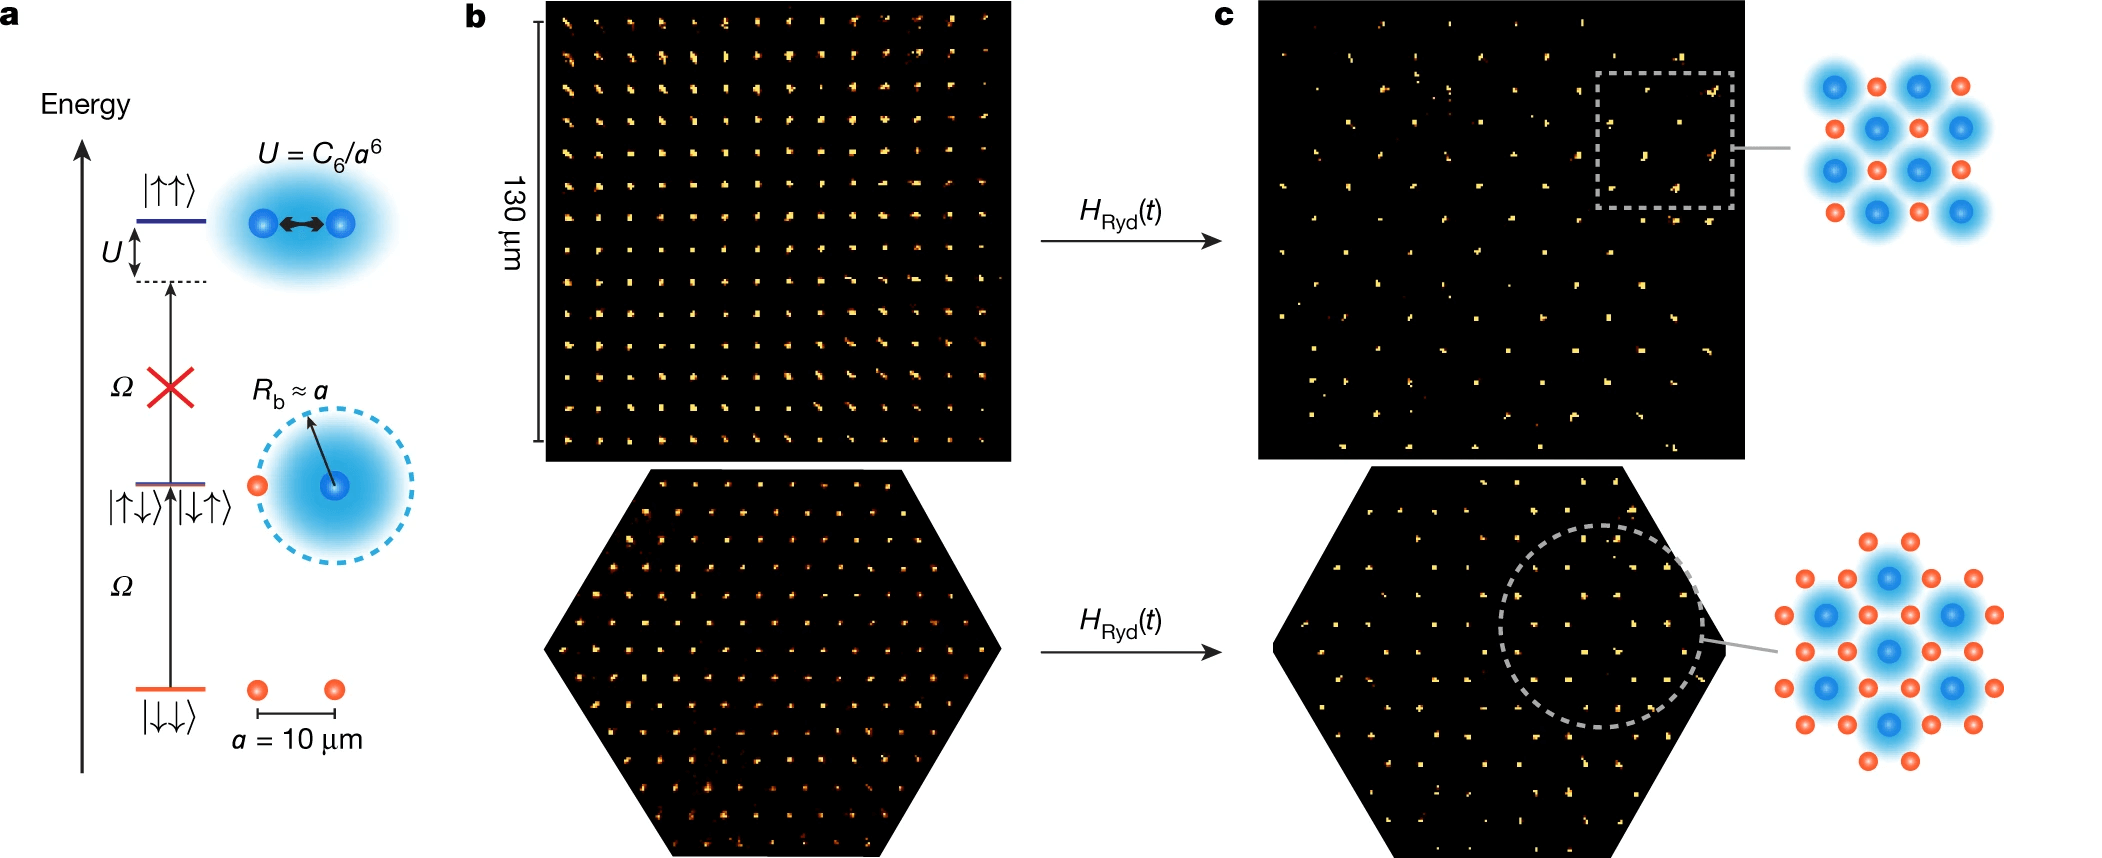 Emergence of antiferromagnetic ordering from the Rydberg blockade in square and triangular arrays